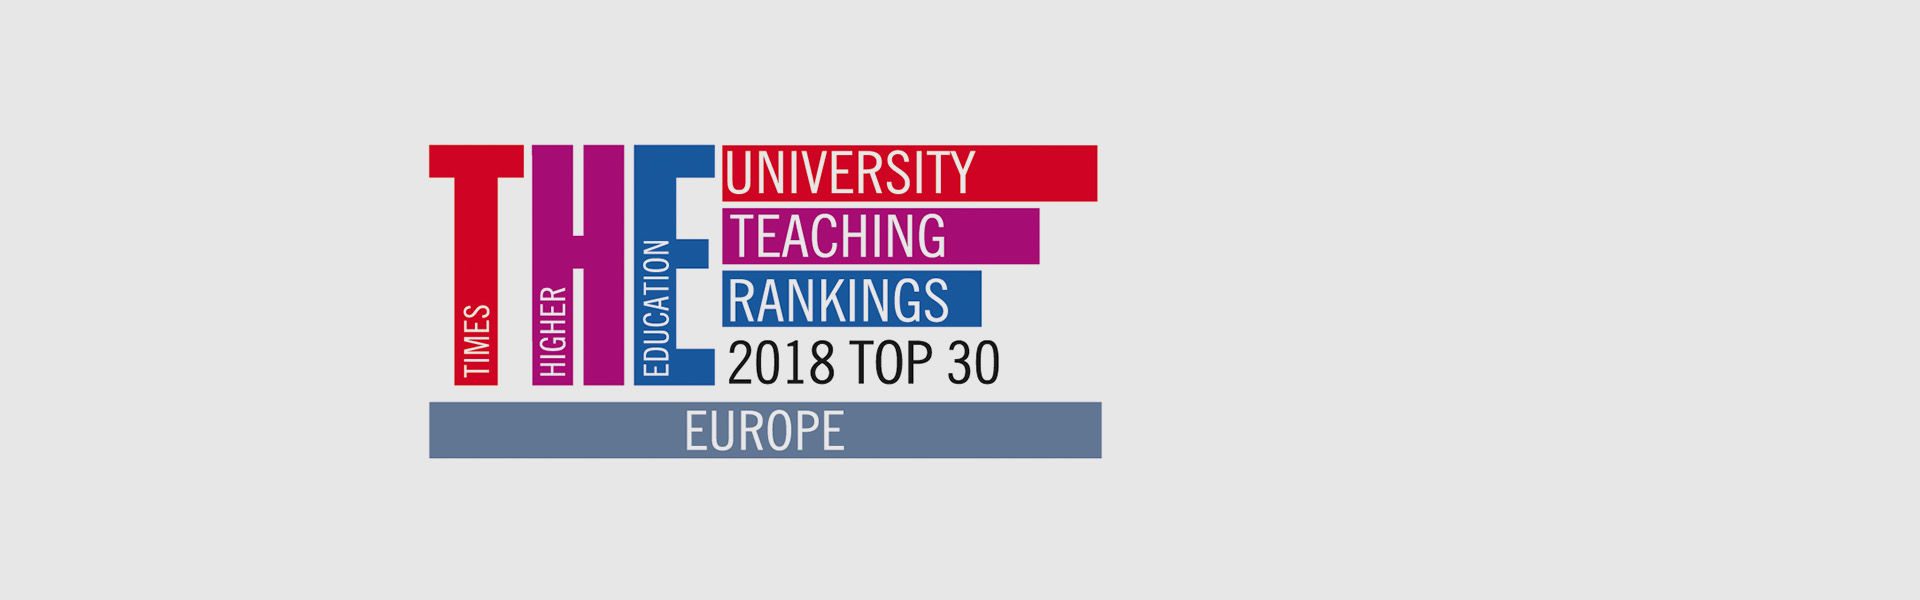 Universidade de Lisboa é 28ª no Ranking Europeu de Ensino do THE Times